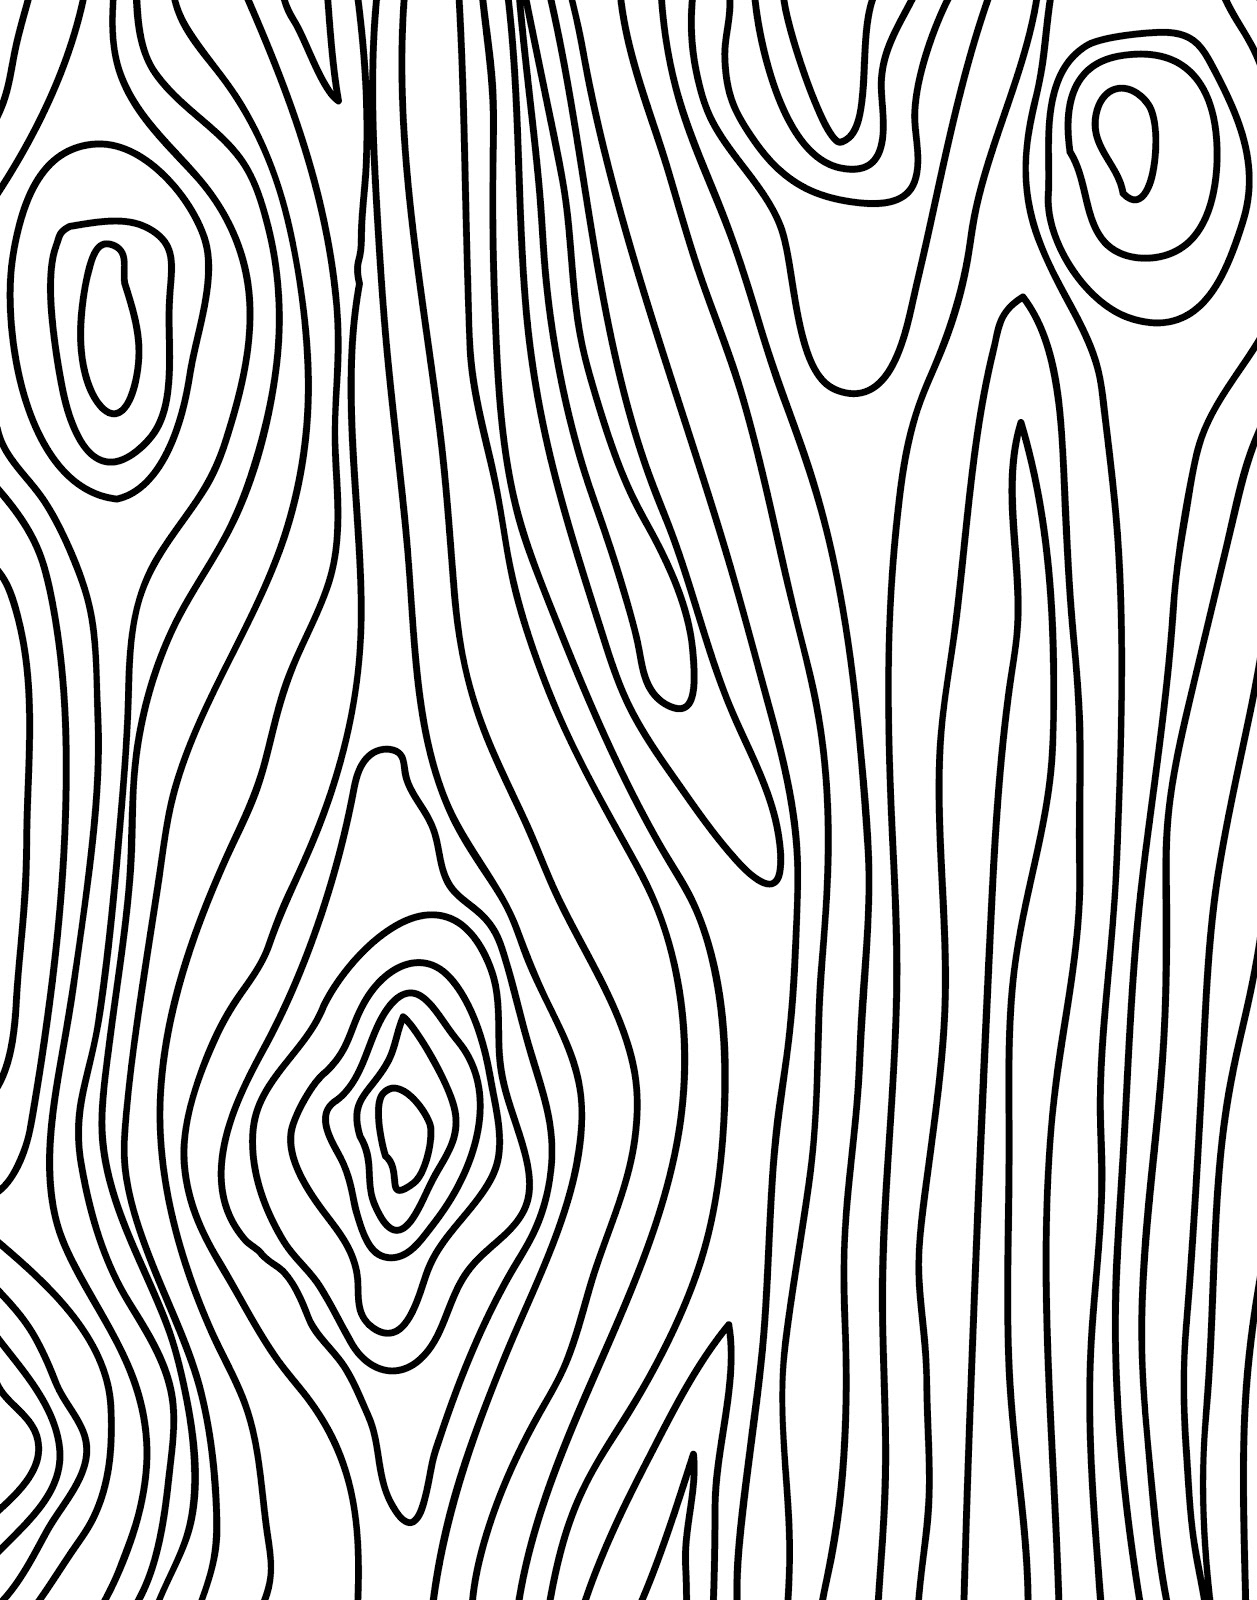 Free Wood Grain Cliparts, Download Free Clip Art, Free Clip.